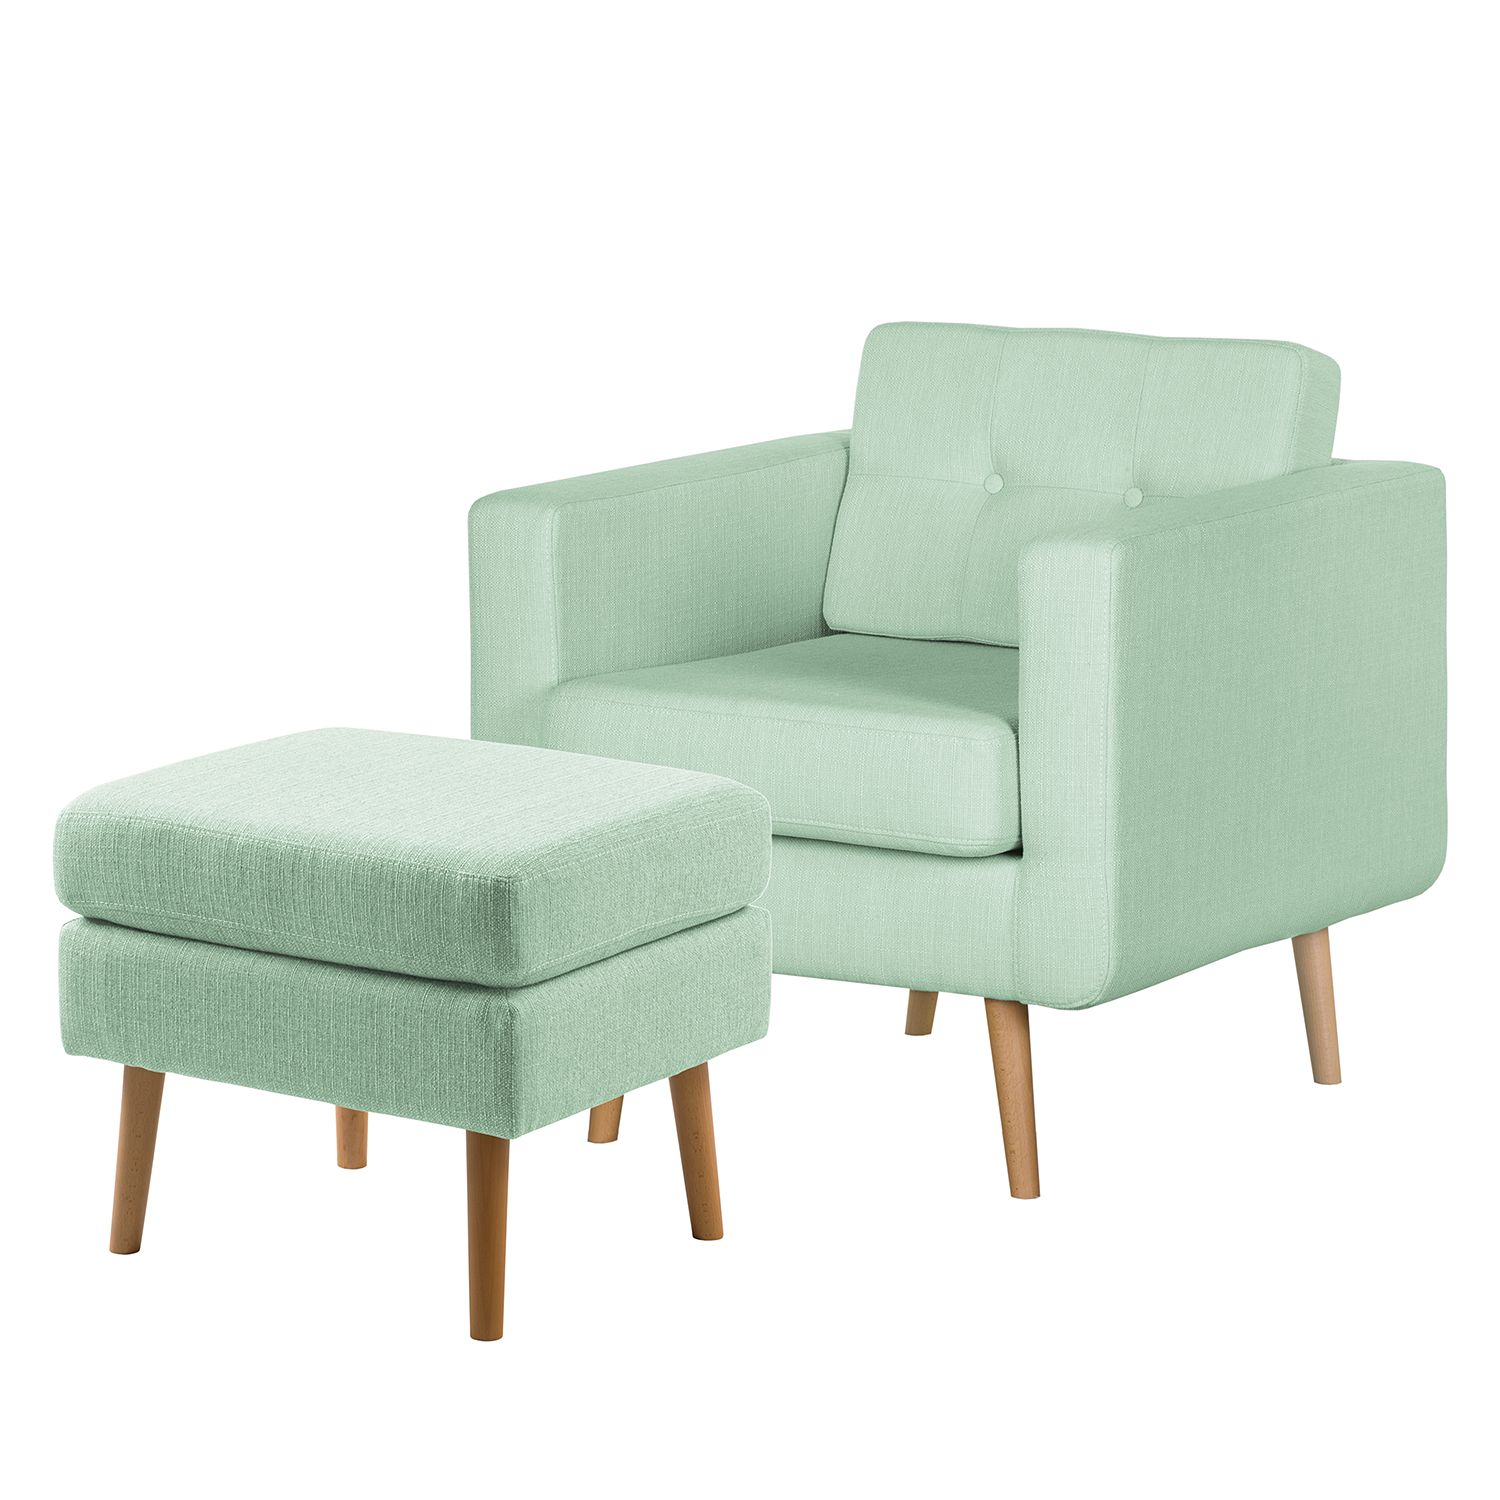 goedkoop Fauteuil Croom V geweven stof Hocker Mintgroen Morteens